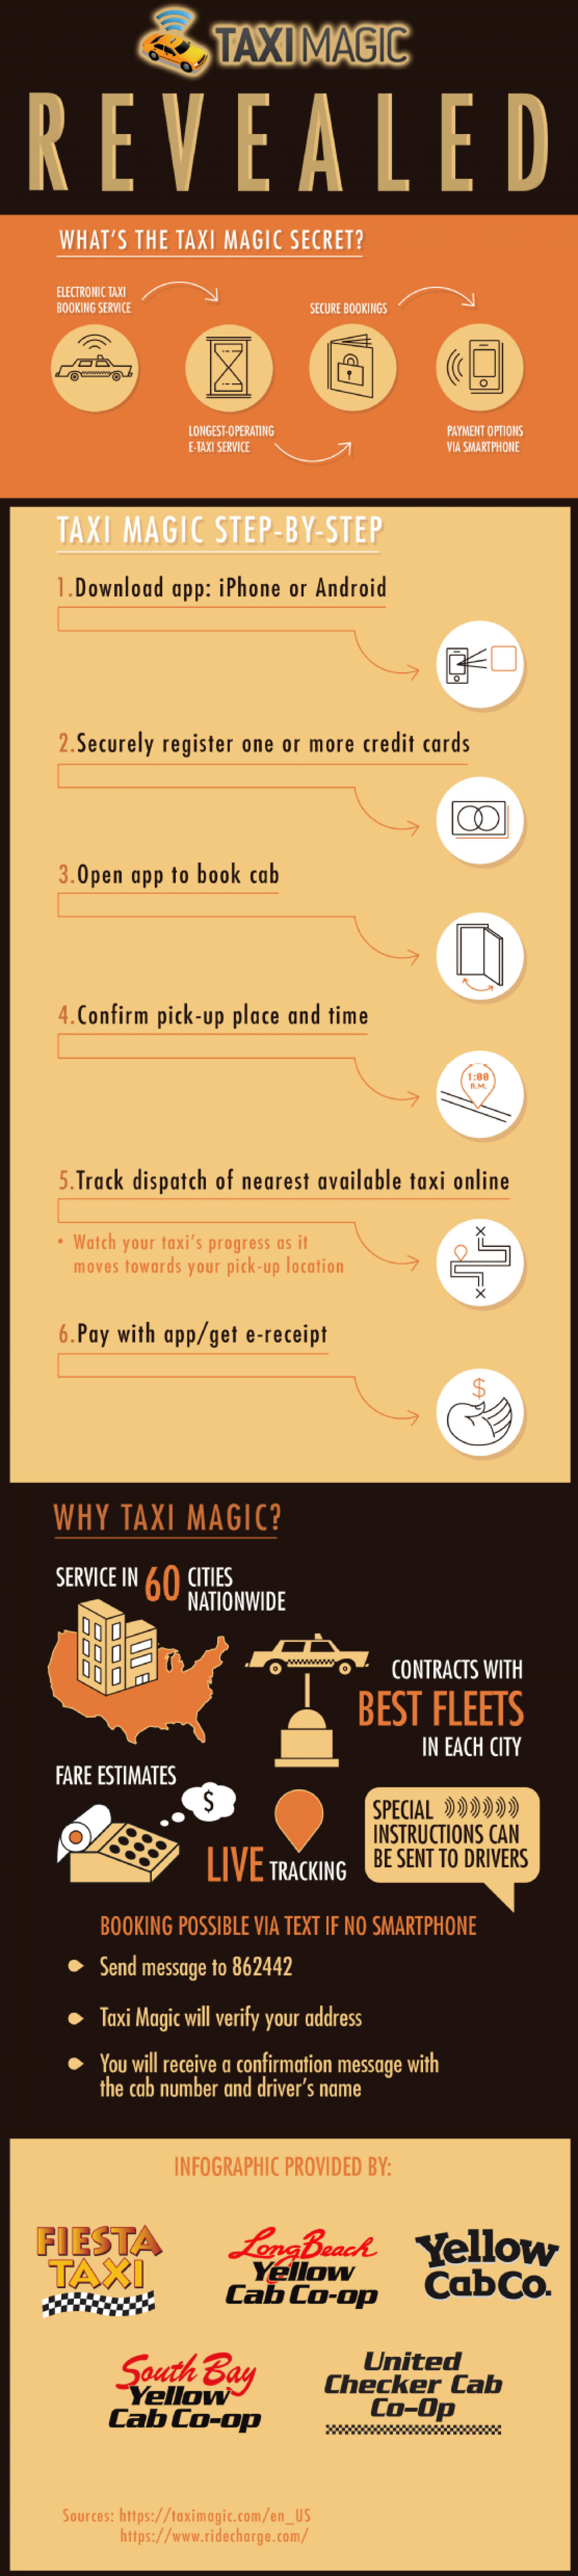 Taxi Magic Revealed Infographic